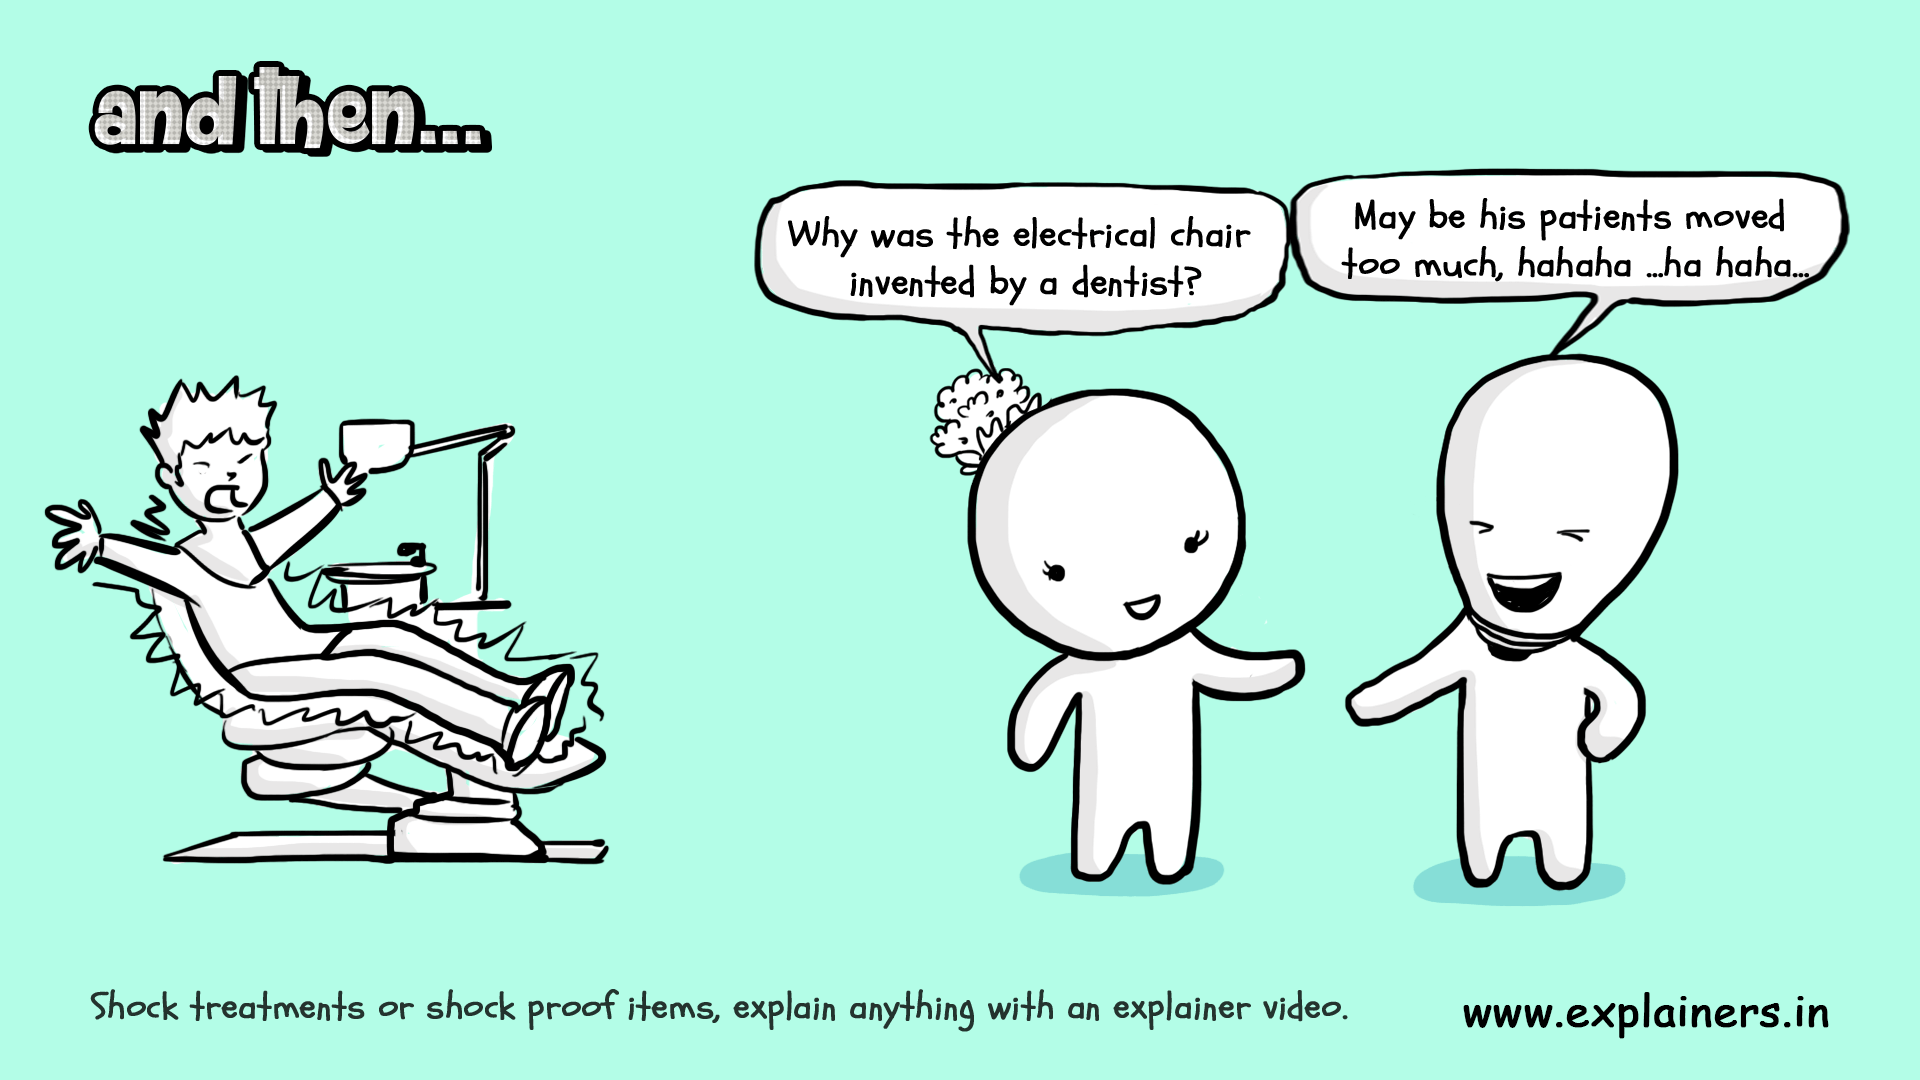 Explainers video, explainers, animated explainer video, animation video, animation production company, explainer video production company, explainer video company in india